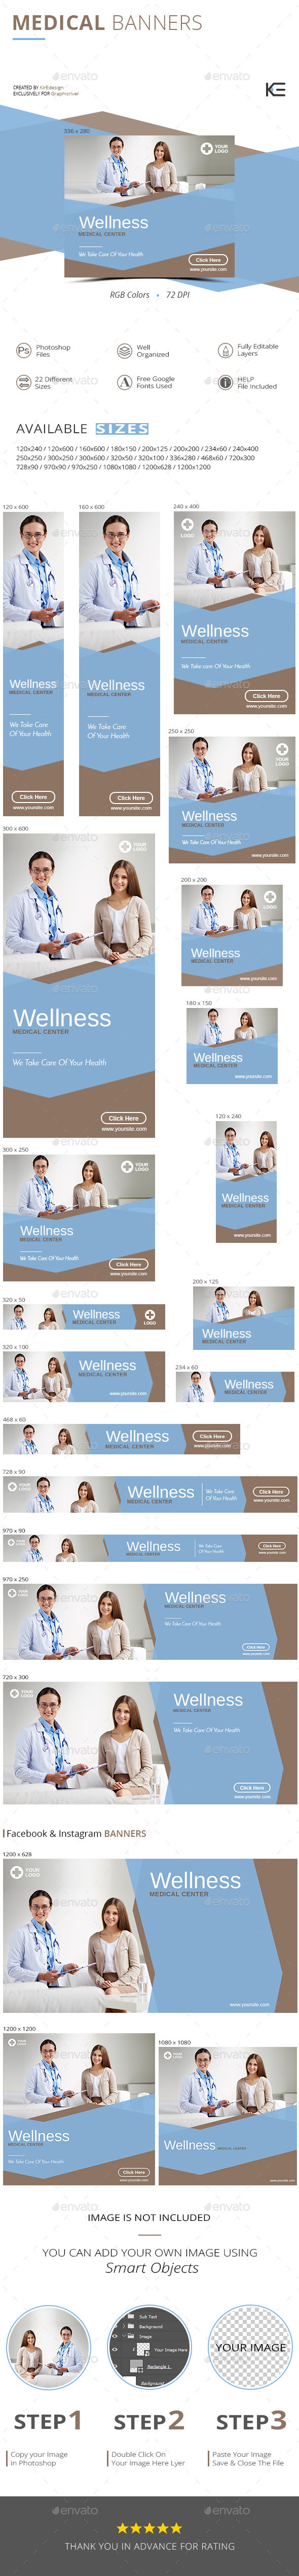 Medical & Health Care Banners - Banners & Ads Web Elements